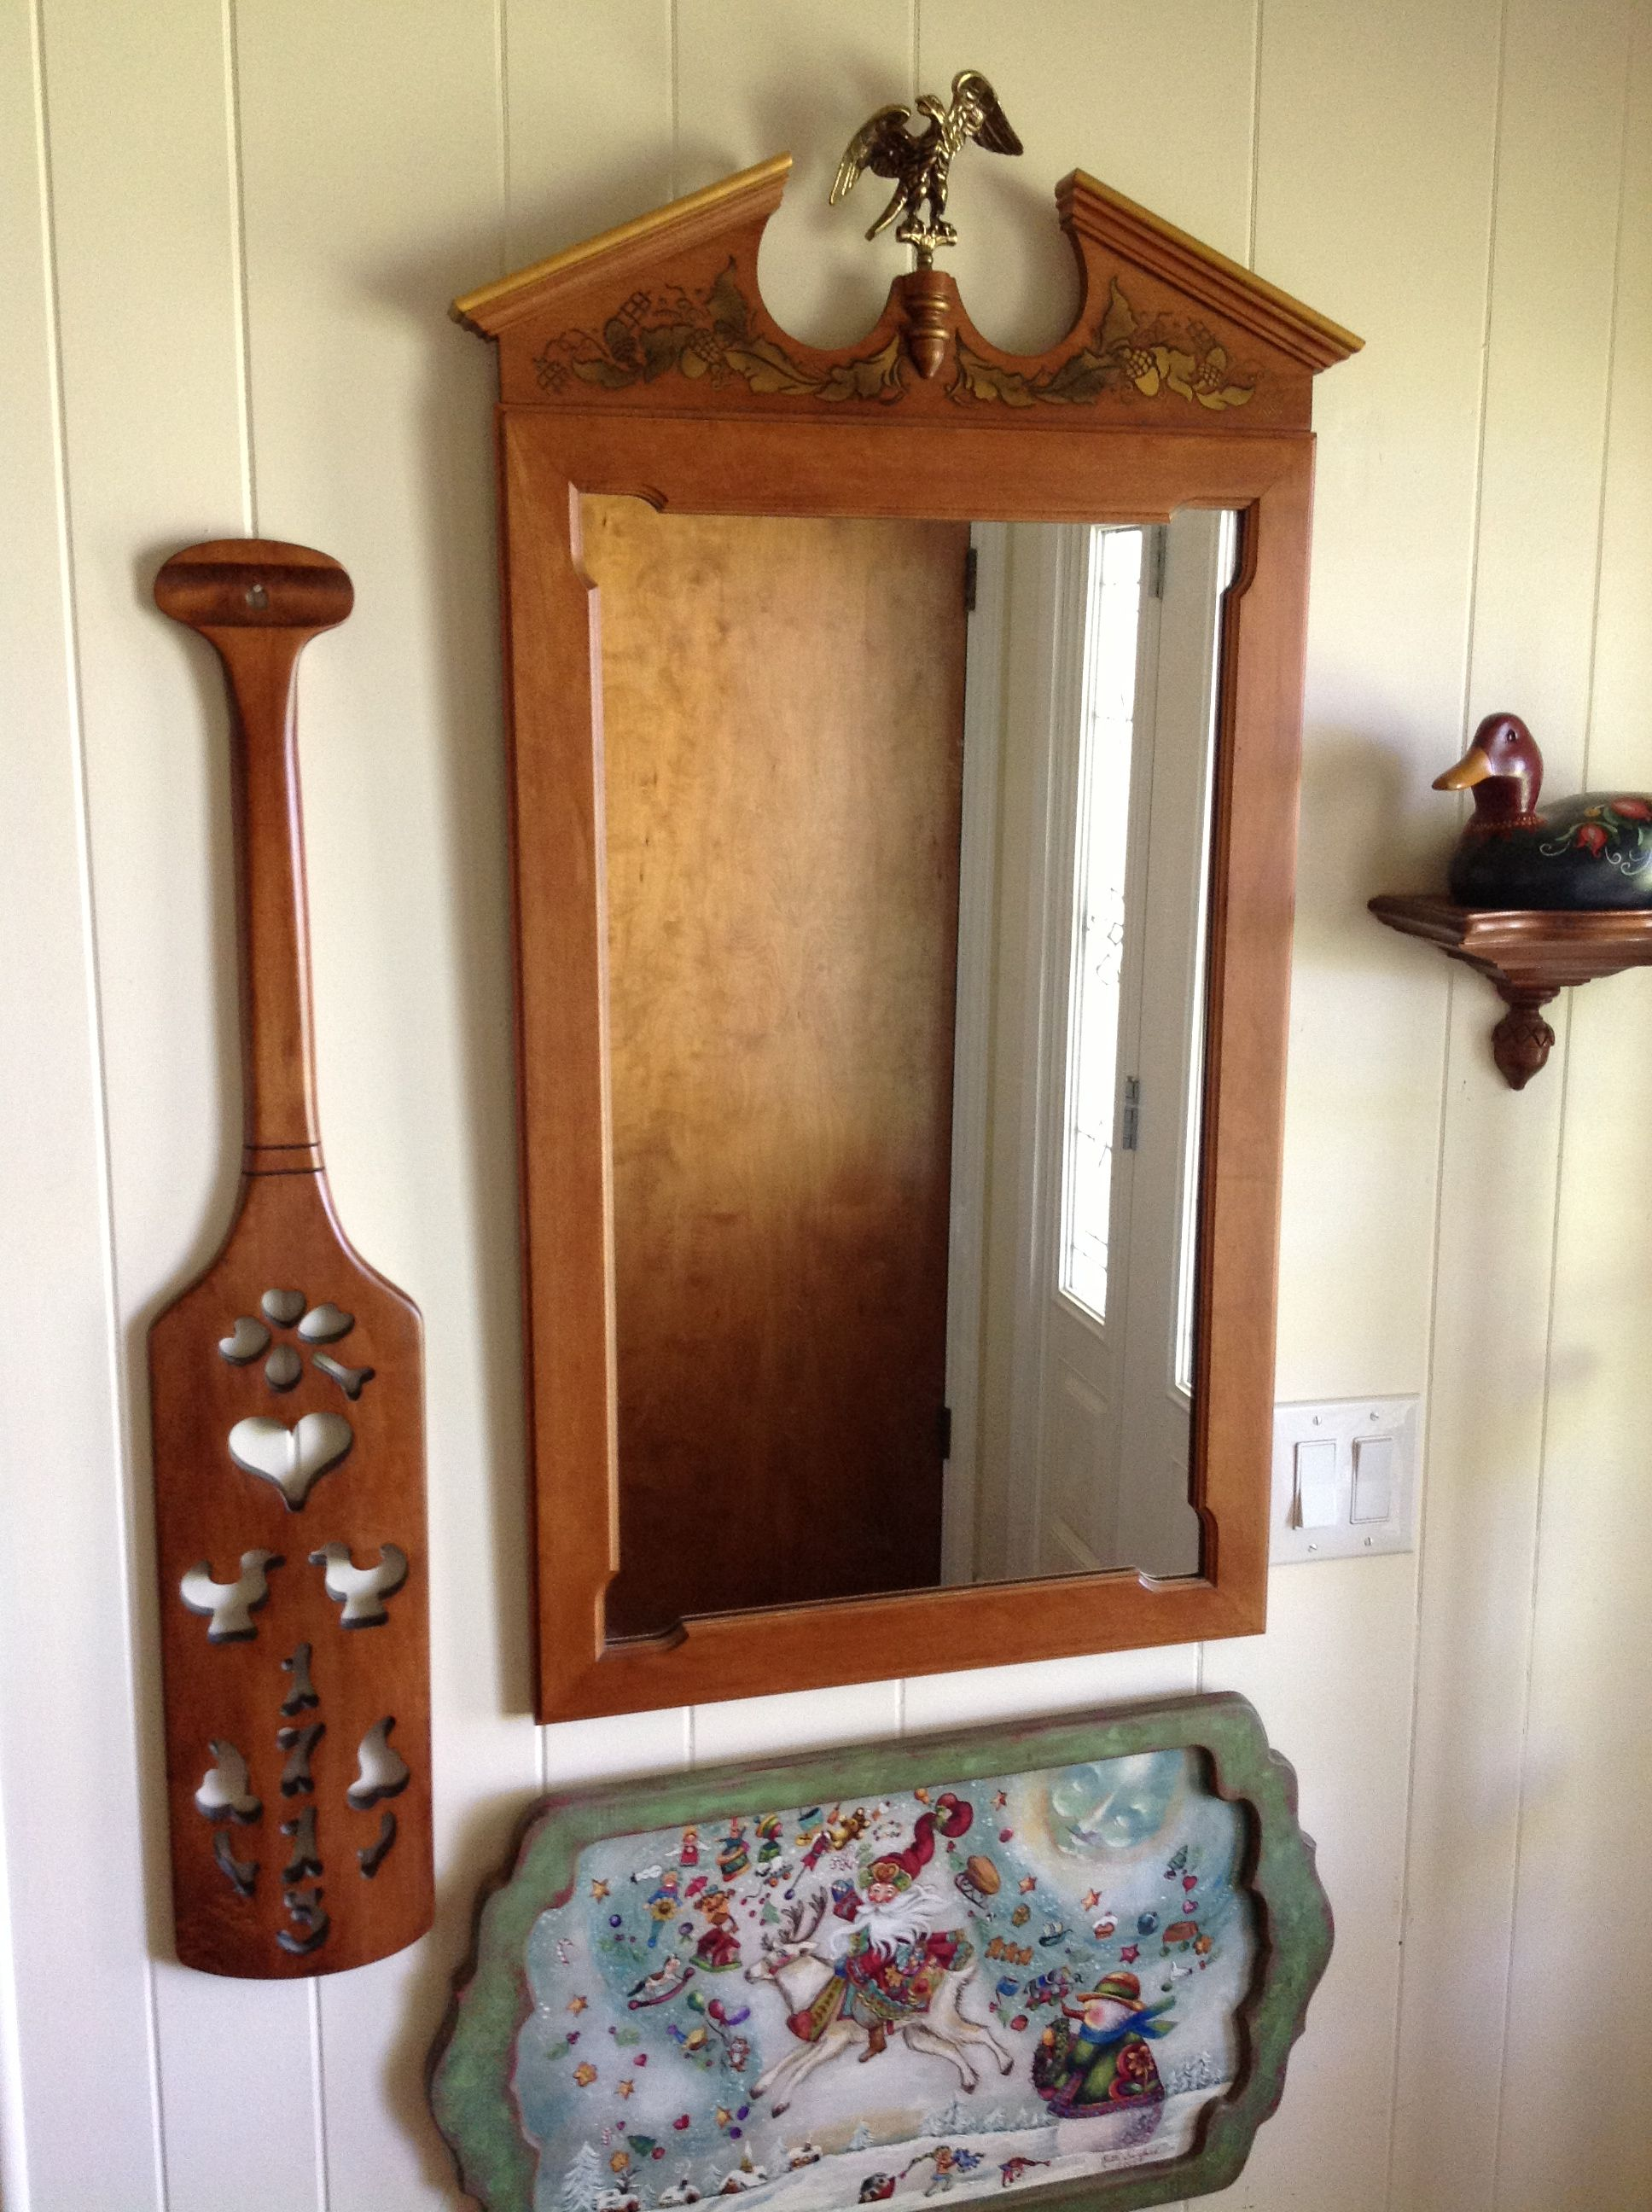 Tell City Chairs Pattern 4222 Used Zero Gravity For Sale Mirror Paddle And Small Acorn Shelf My